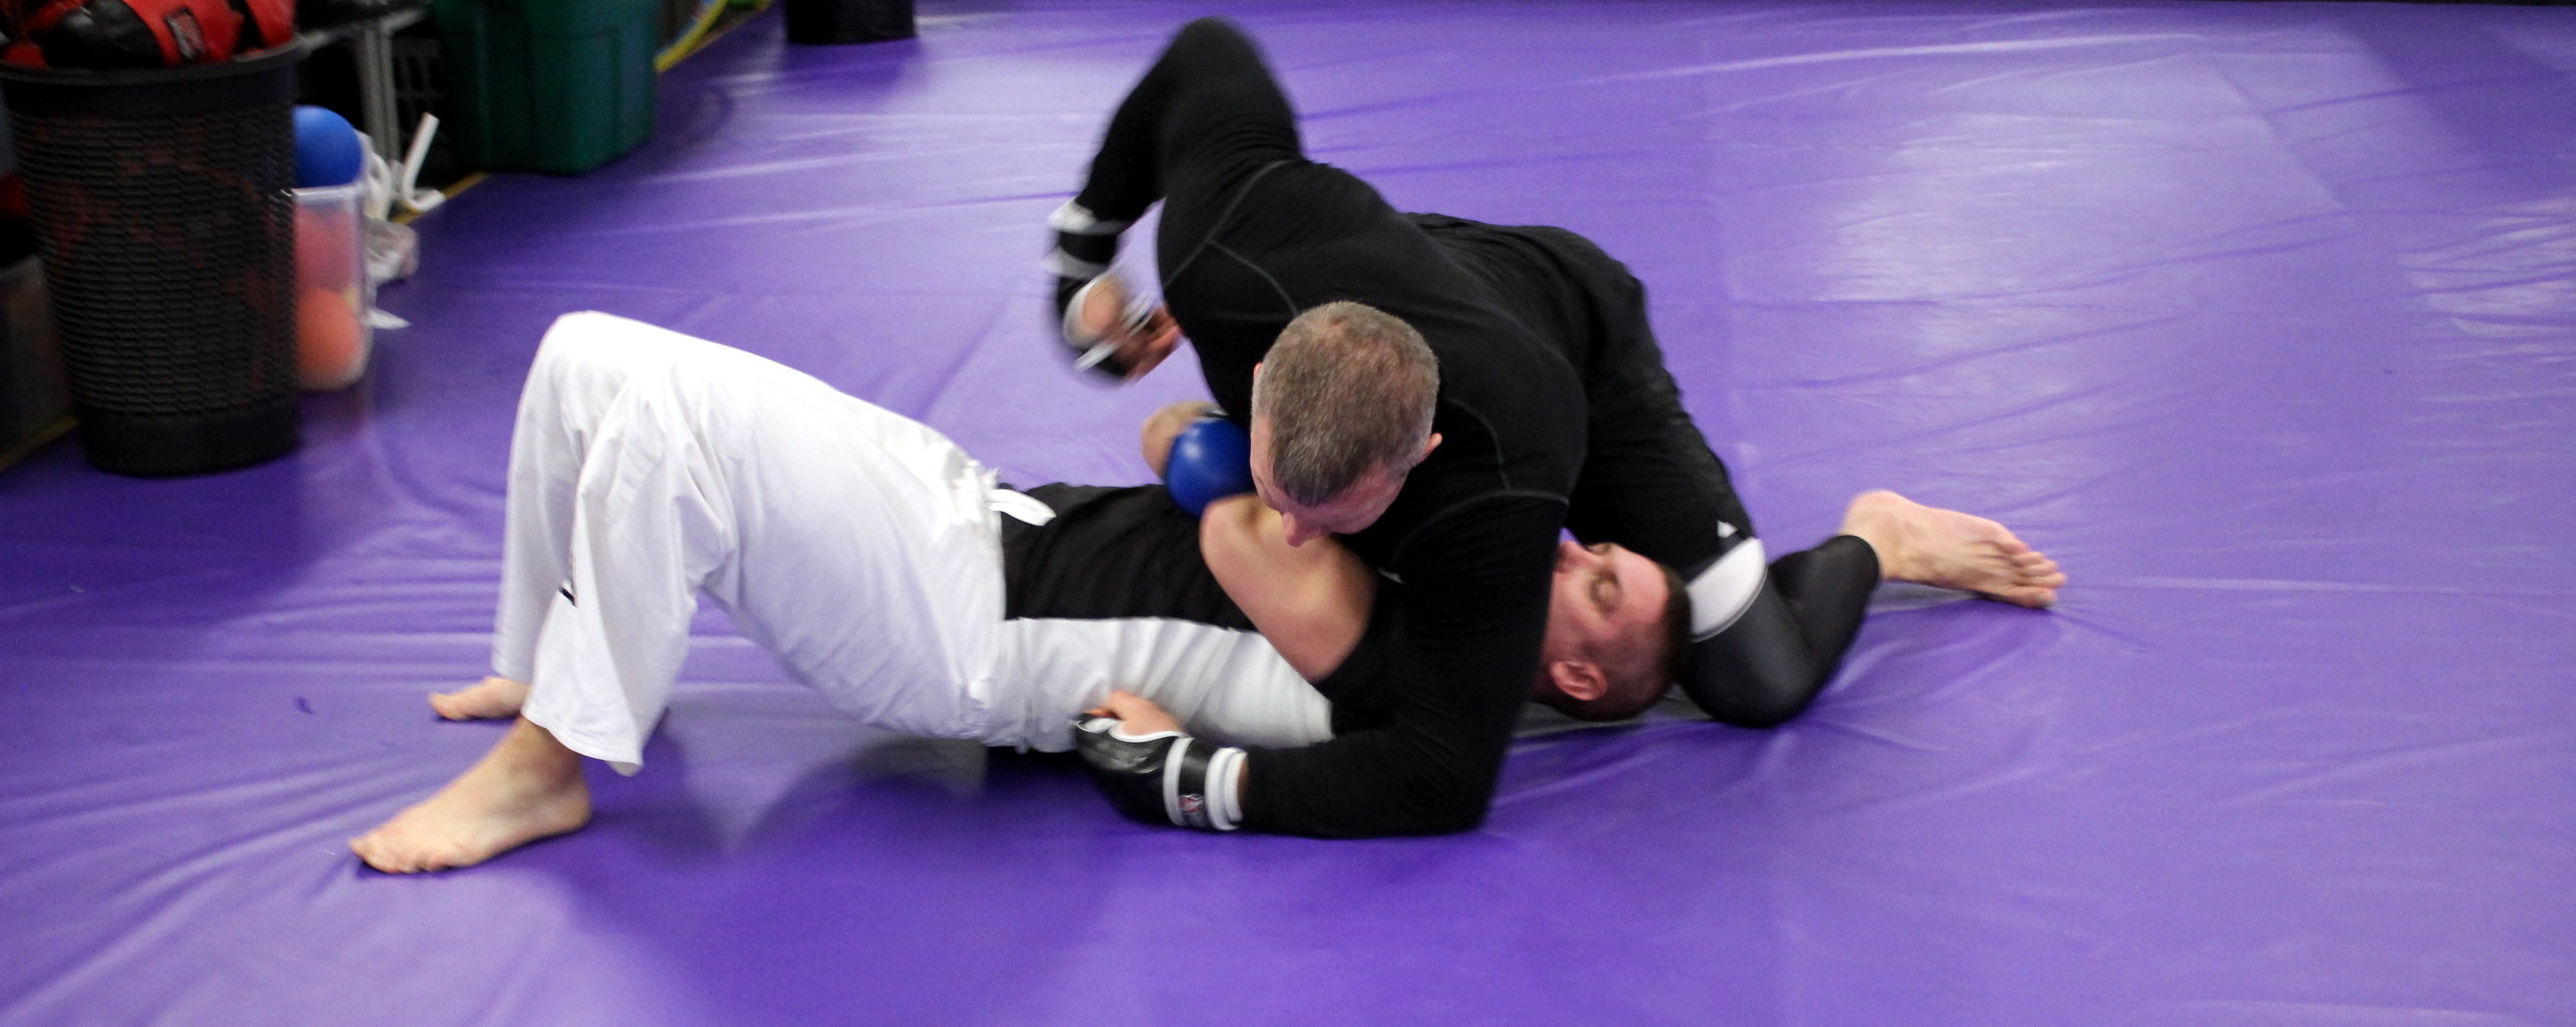 BJJ Sparring Tips - Defence First